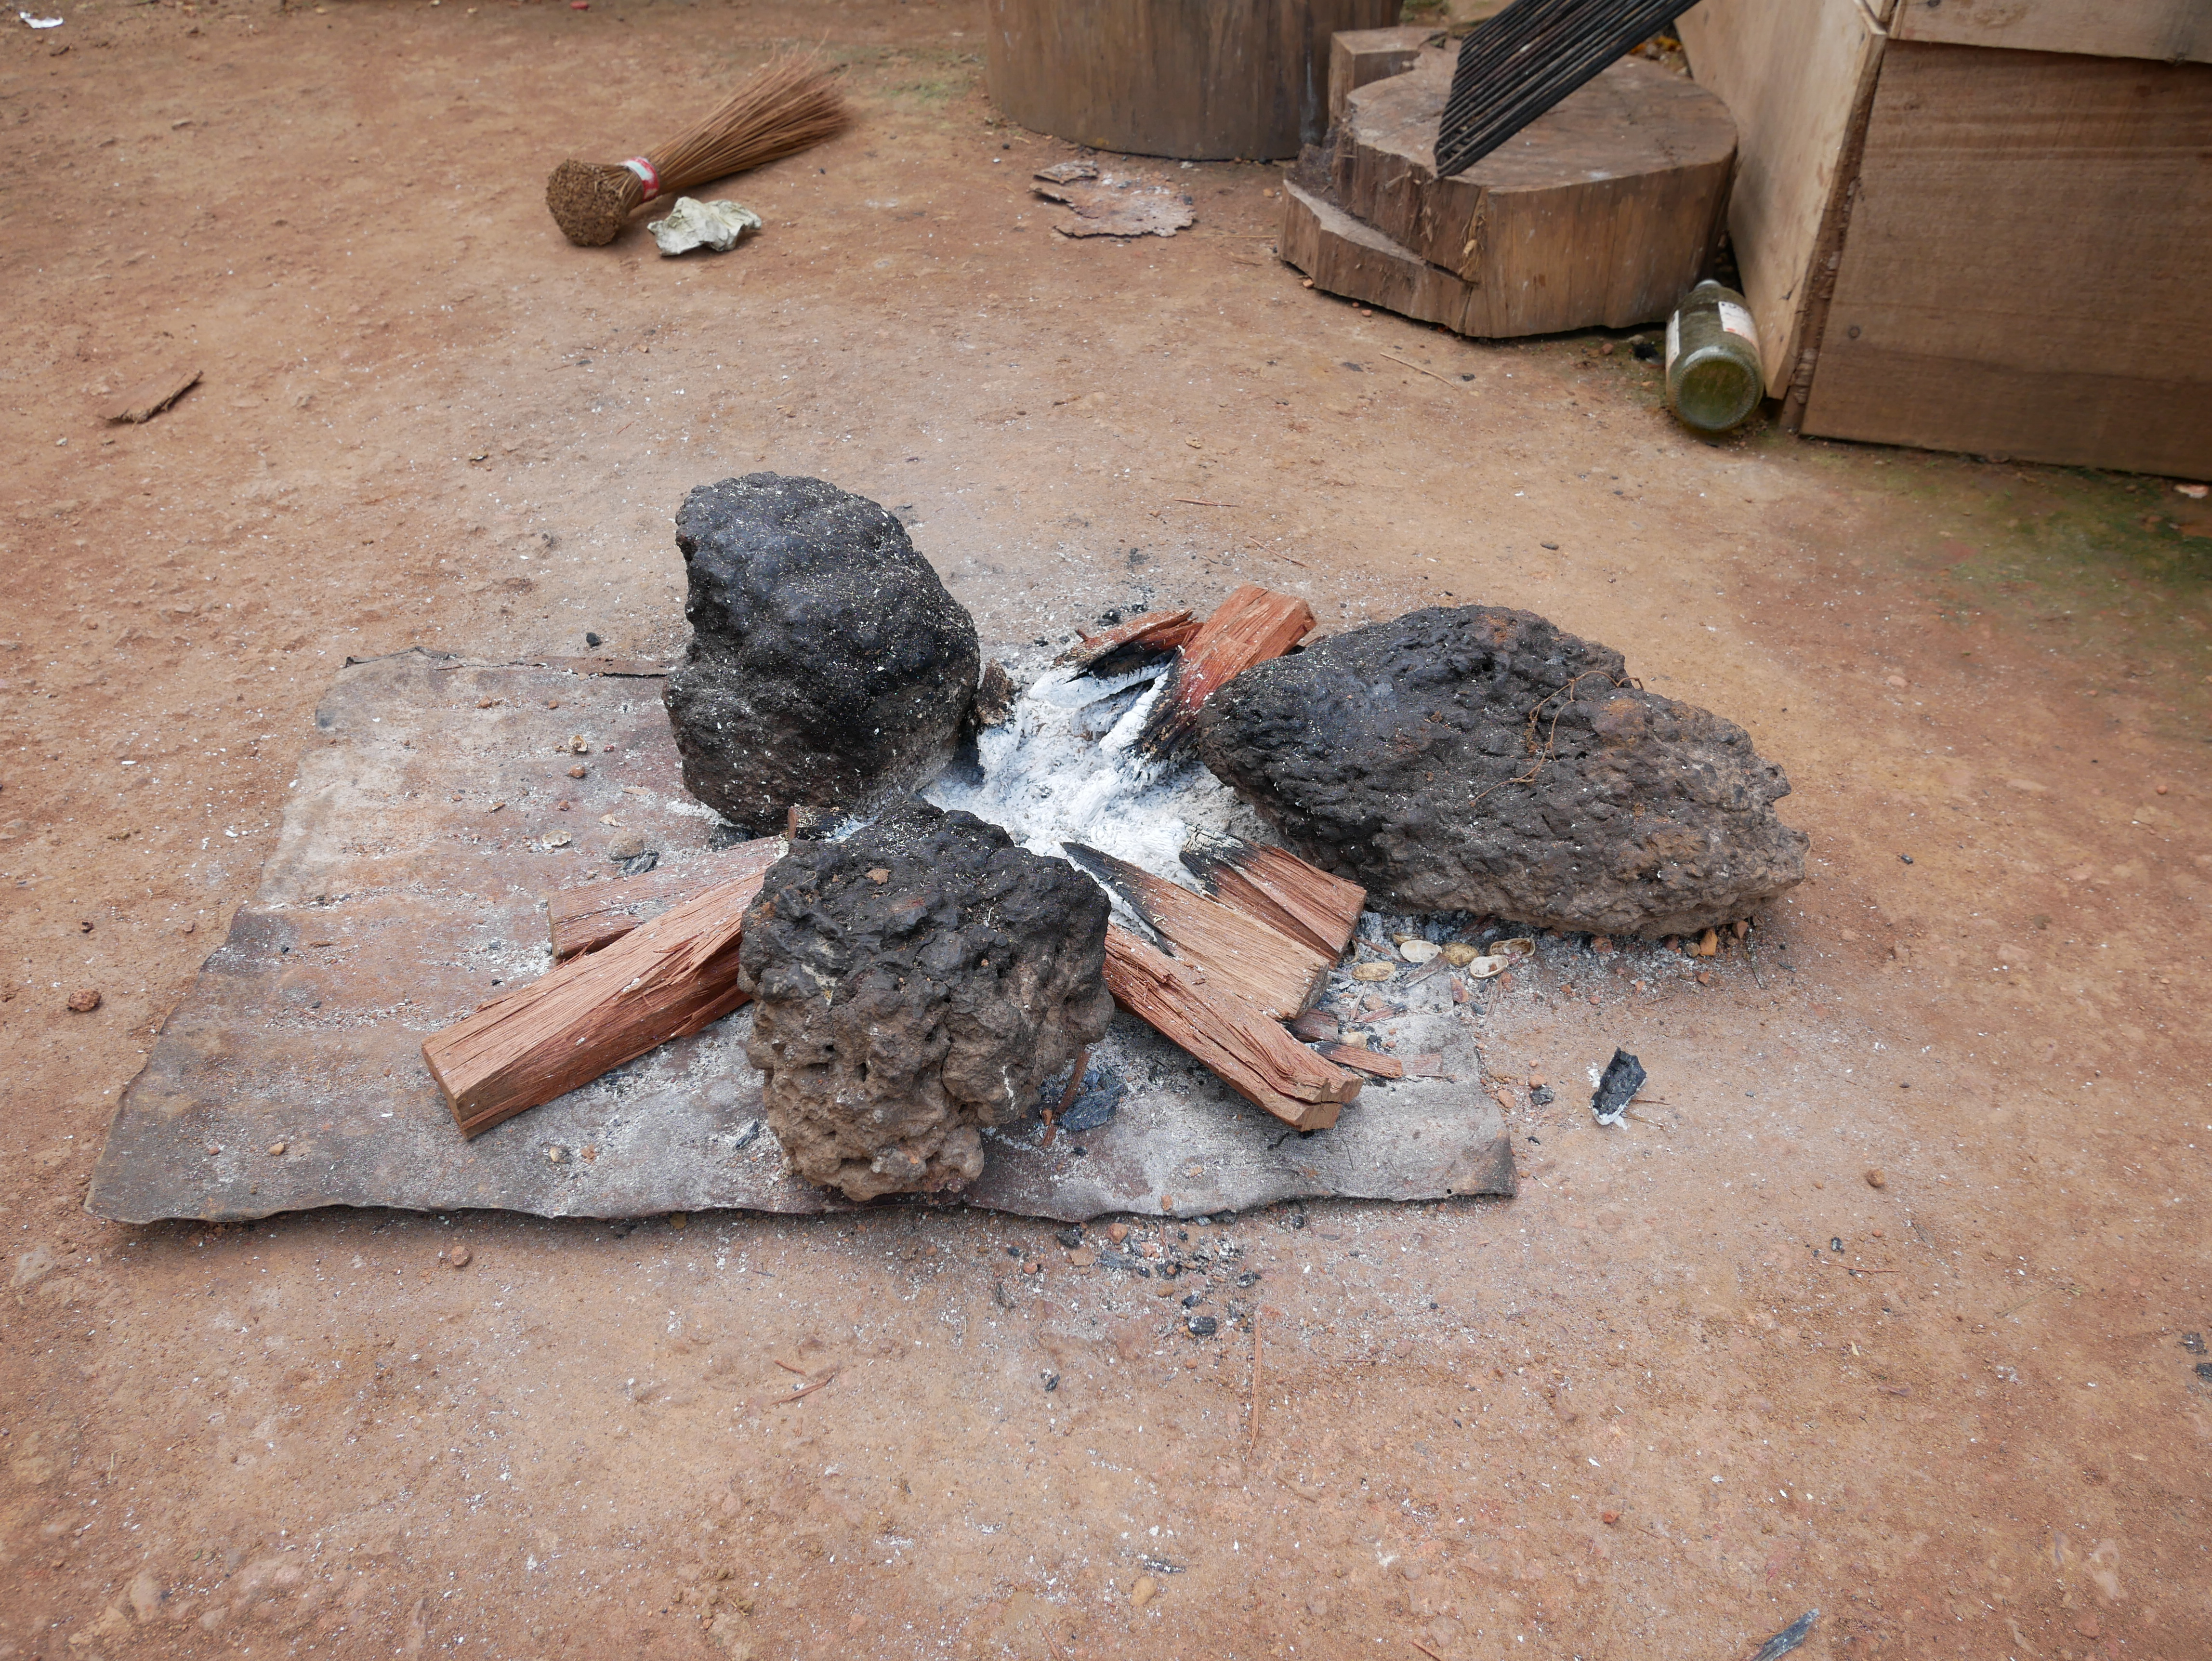 A traditional three-stone cooking fire in Mapati, Republic of Congo. (Photo by Molly Bergen/WCS, WWF, WRI)